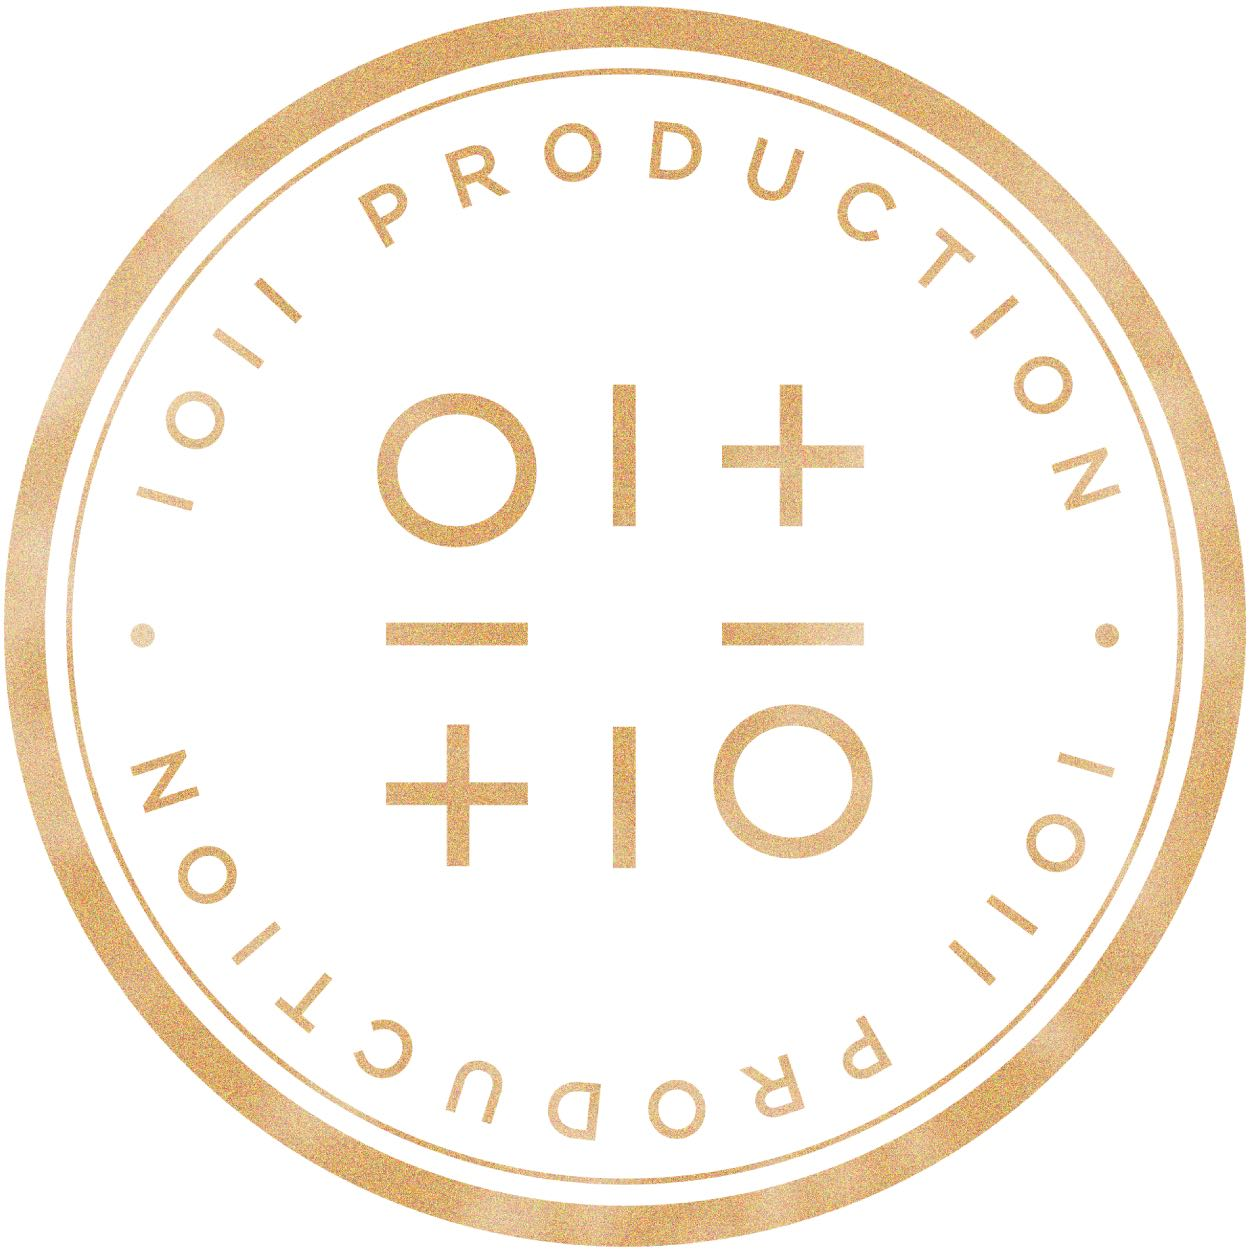 1011production